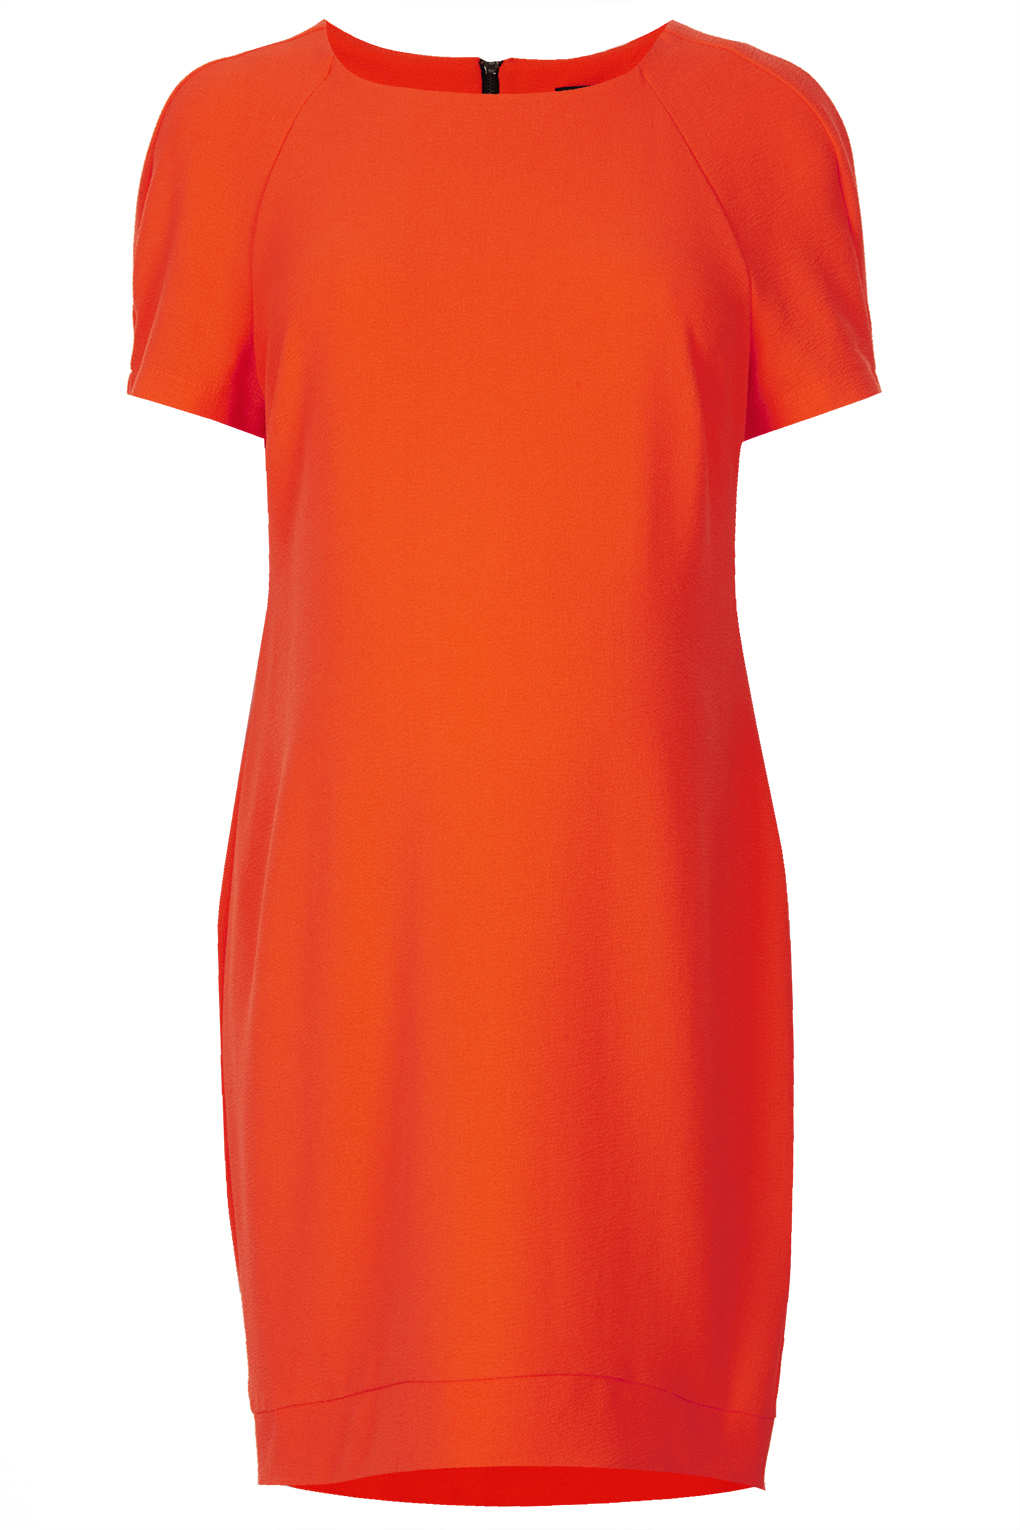 Topshop maternity crepe tee shift dress in orange lyst gallery ombrellifo Gallery